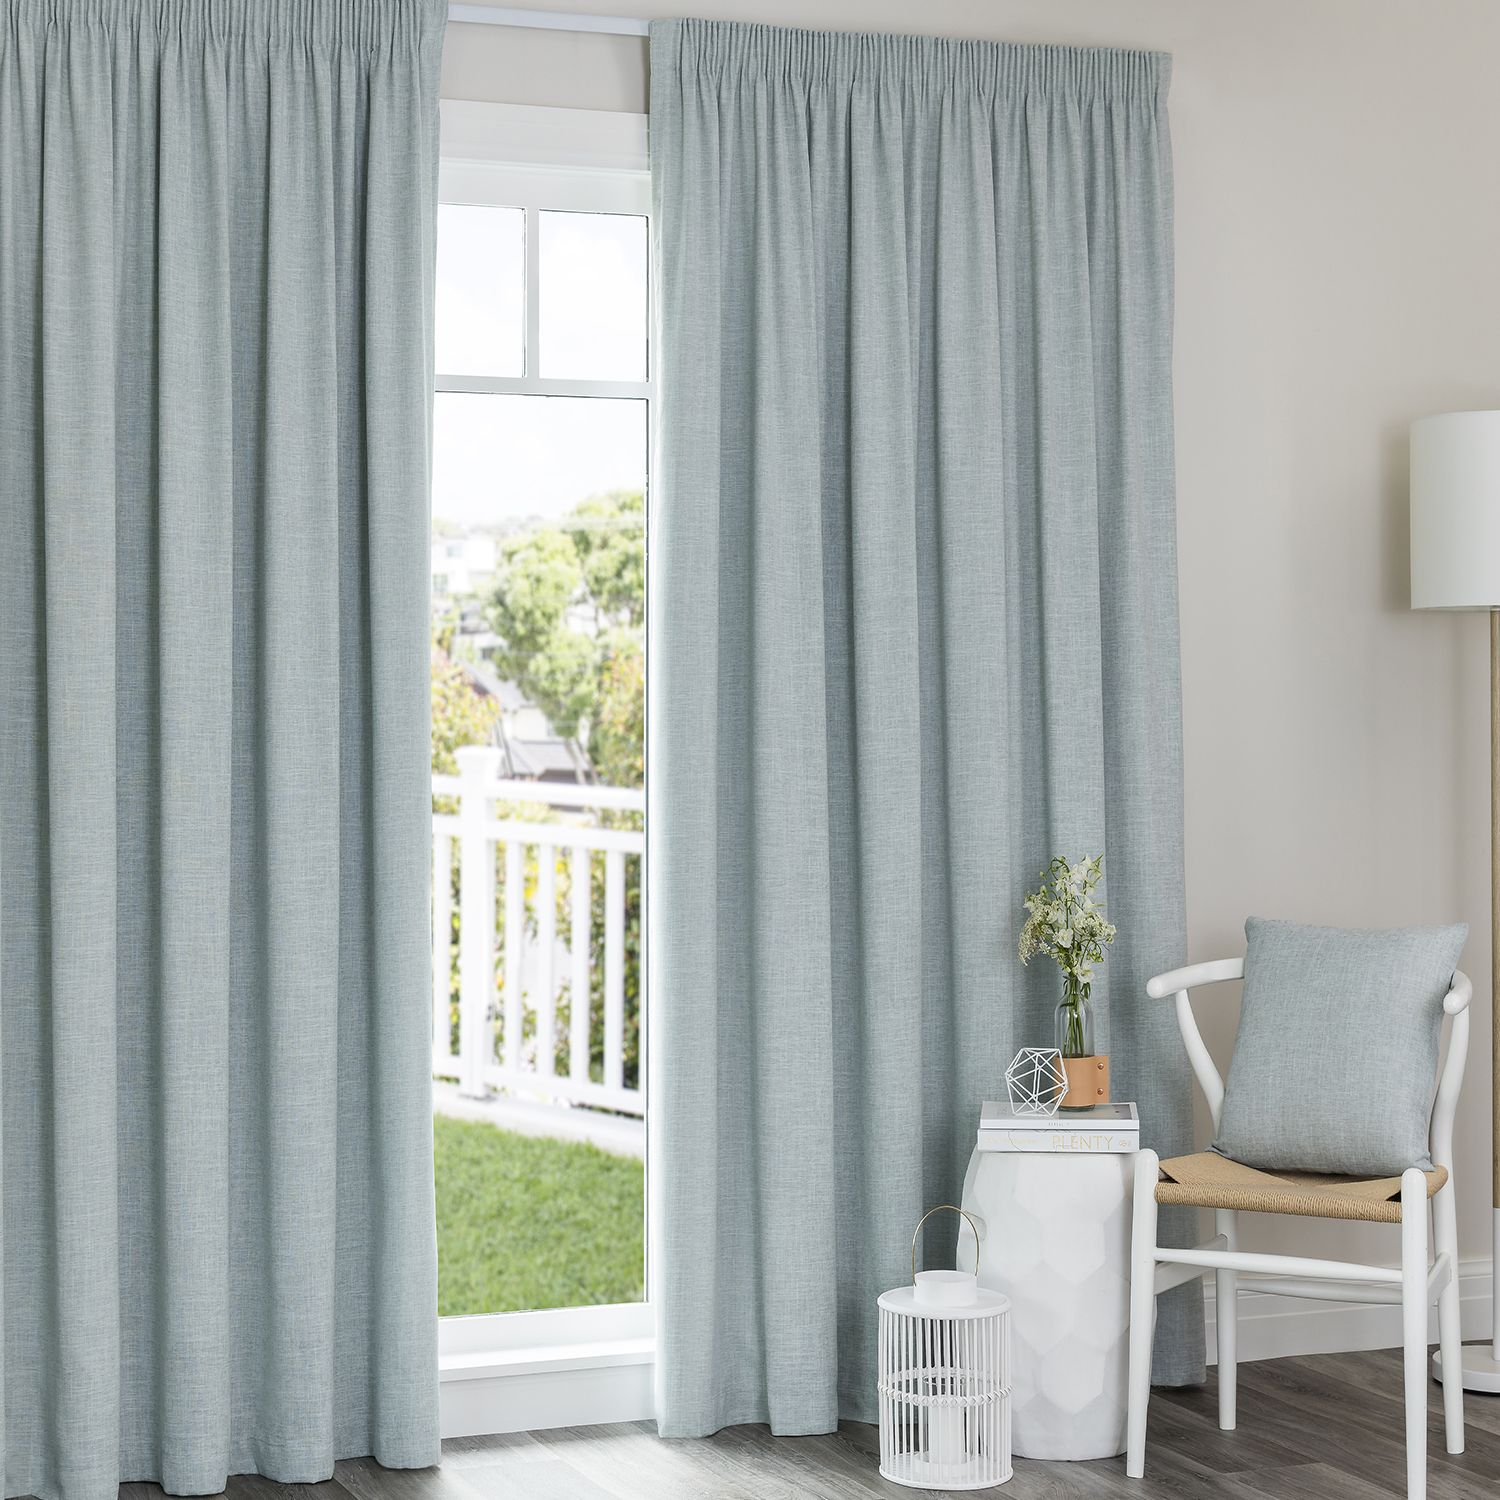 Pin By Sarah Maher On Work Buy Curtains Online Pleated Curtains Buy Curtains